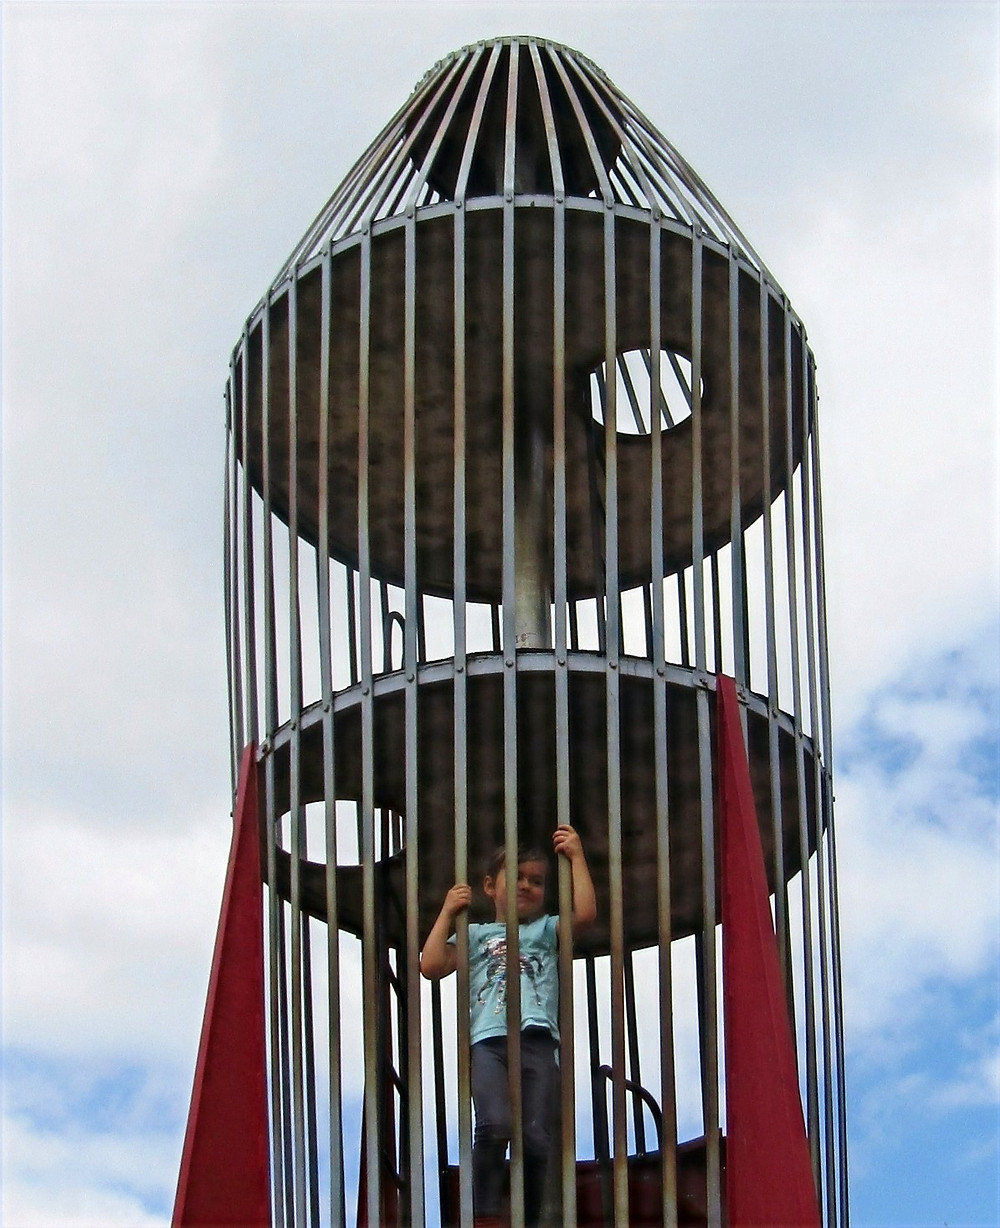 Henry, 4, climbing the iconic rocket at Central Gardens (Rocket Park)